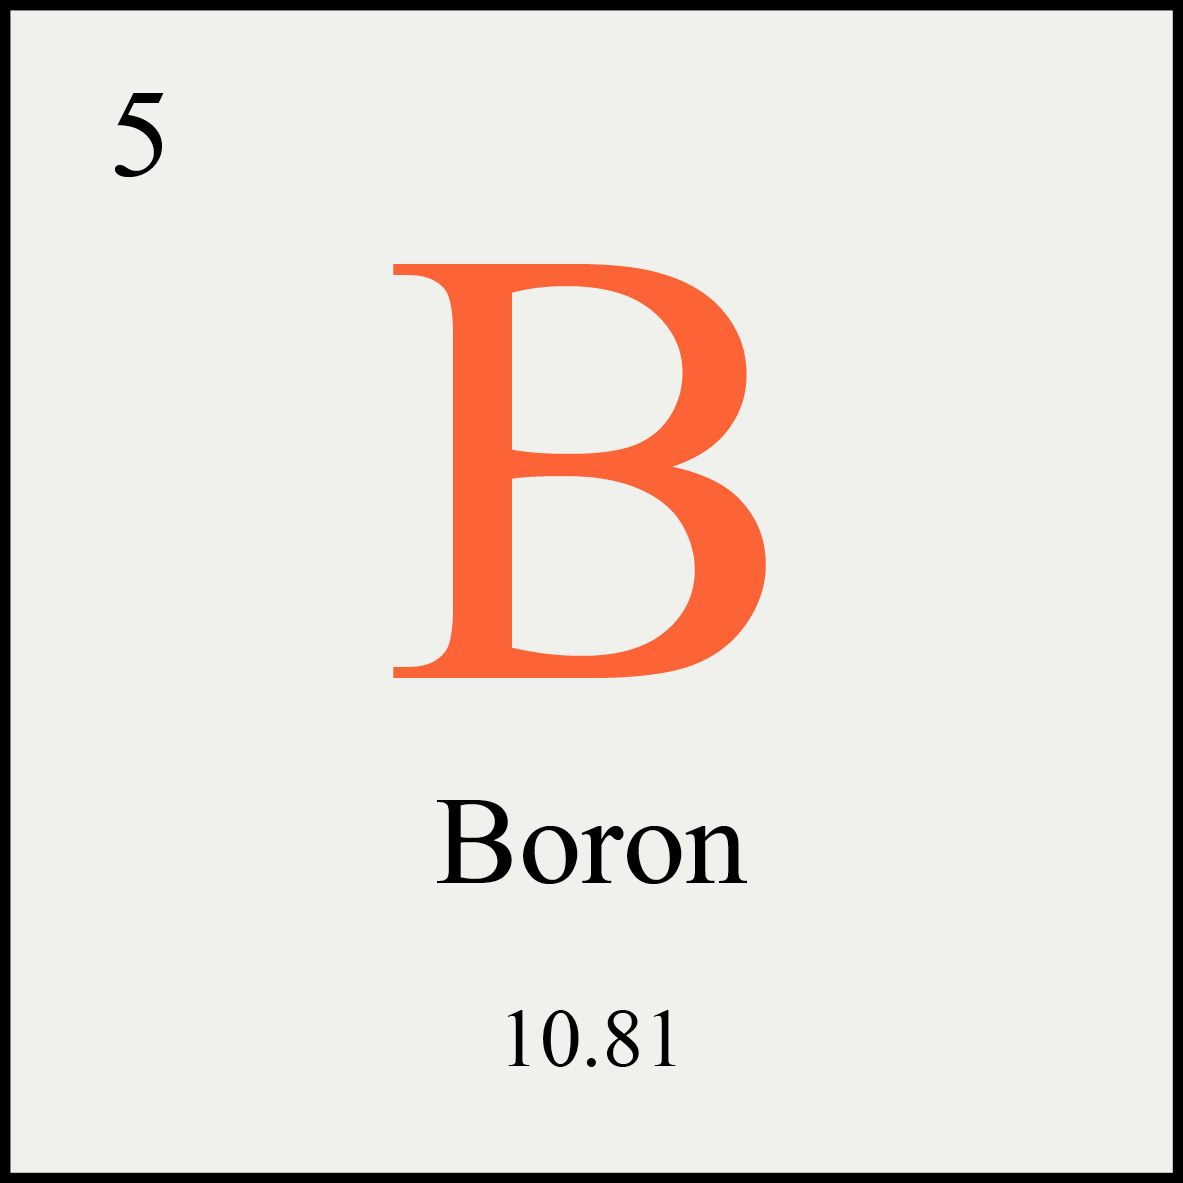 Pin by q dock on periodic table pinterest atomic number and boron is a chemical element with symbol b and atomic number it is found in small amounts in meteoroids and belonging to the metalloid group in the periodic urtaz Image collections